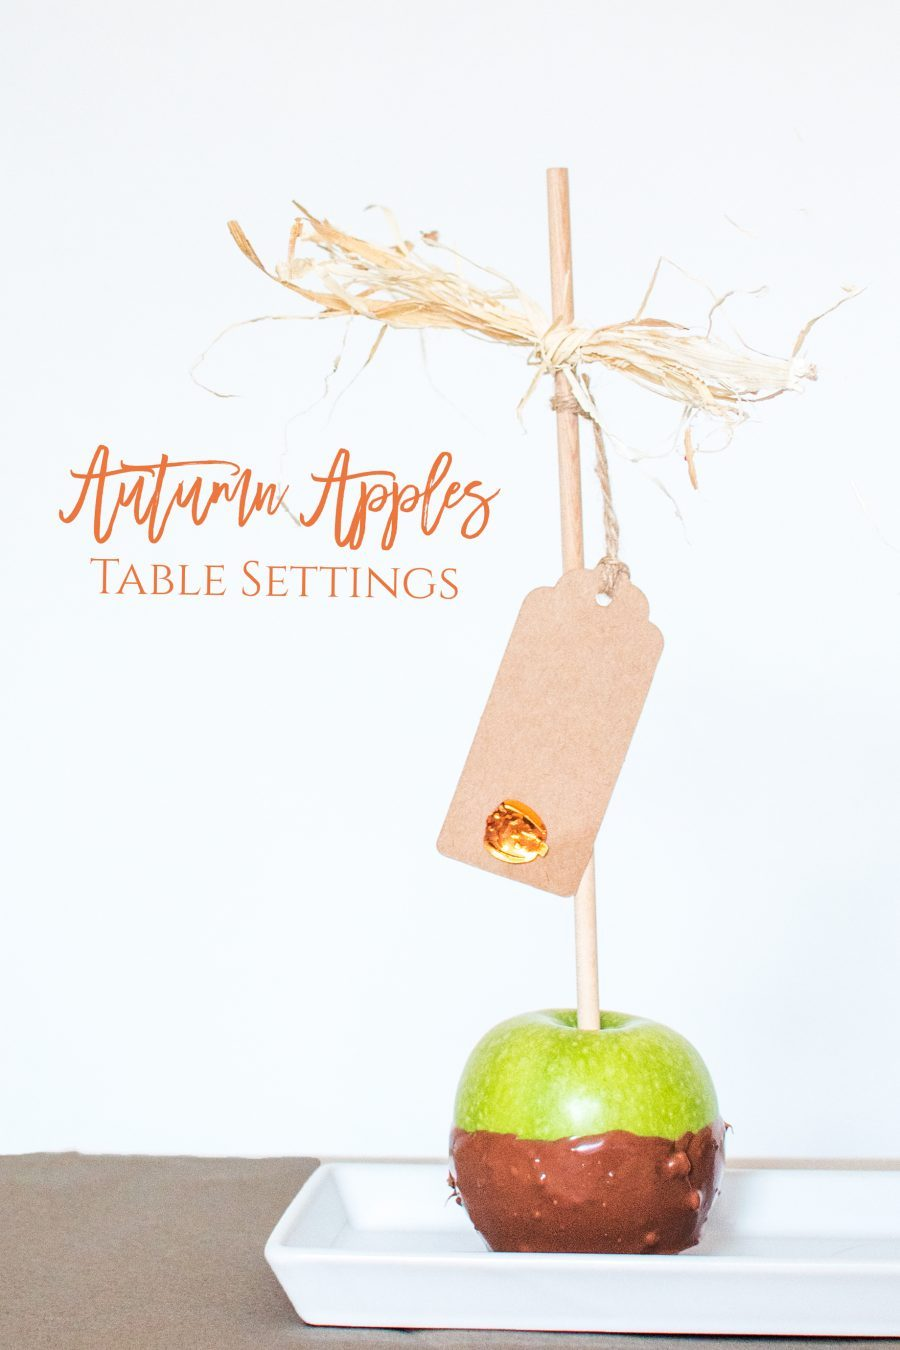 AUTUMN APPLES TABLE SETTINGS